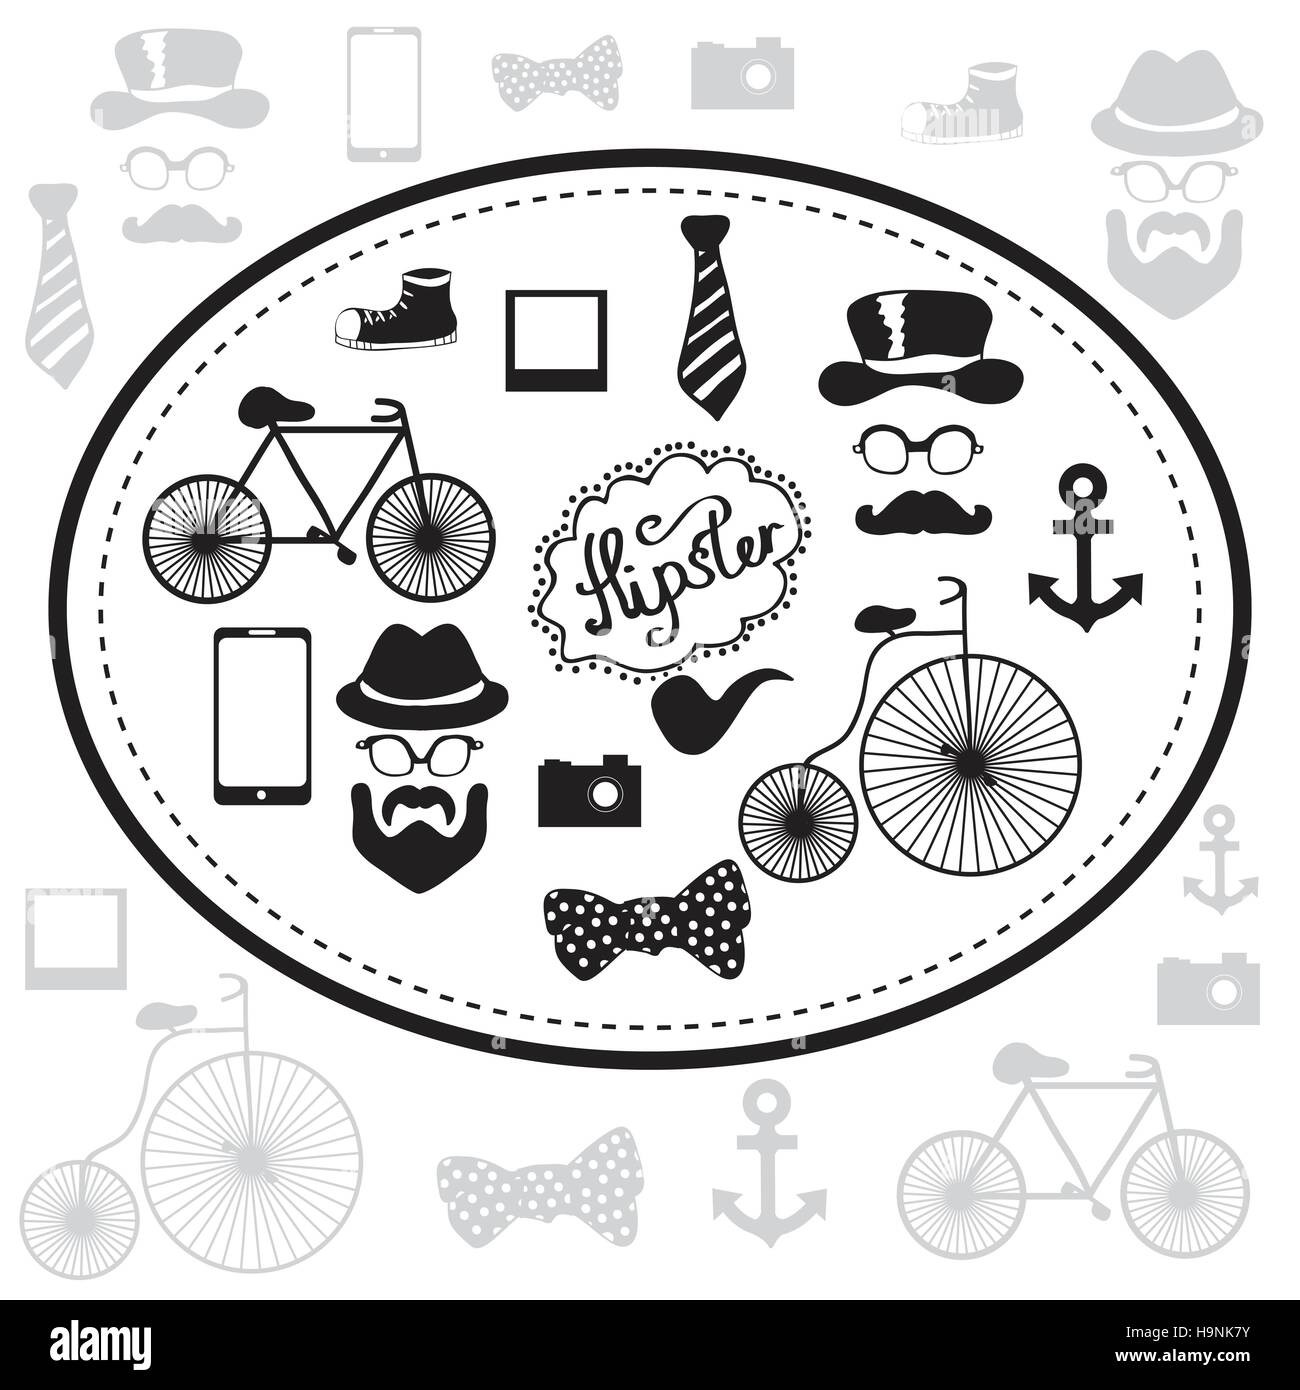 Hipster and retro style icon set - black and white vector illustration - Stock Image